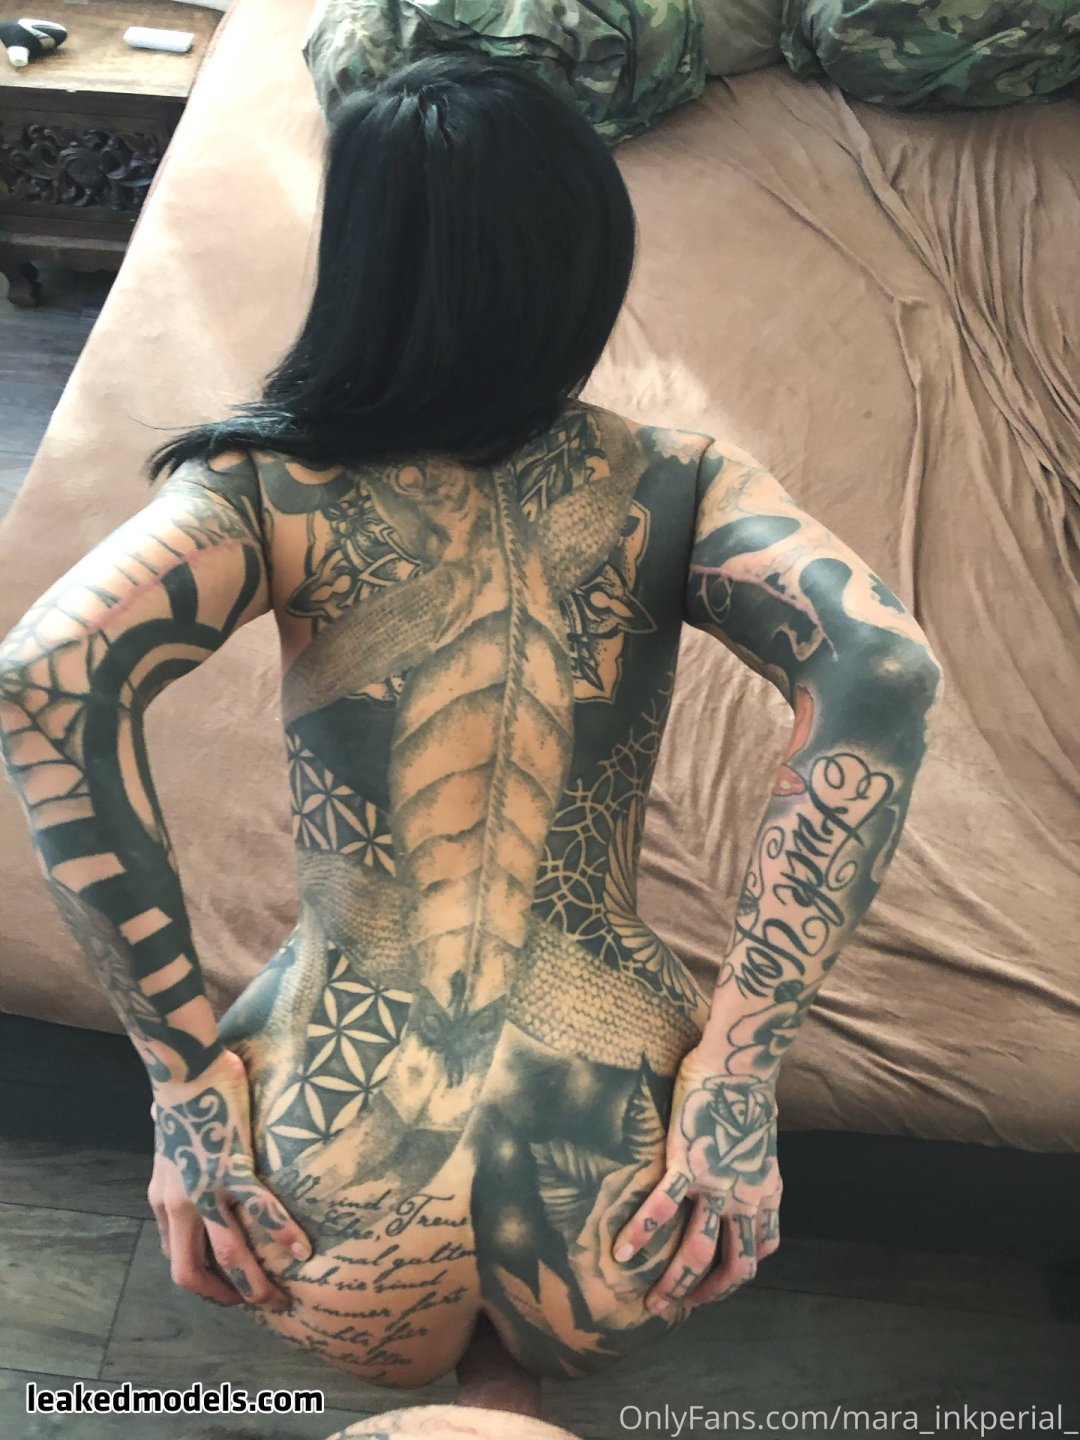 Nude mara inkperial Search Results